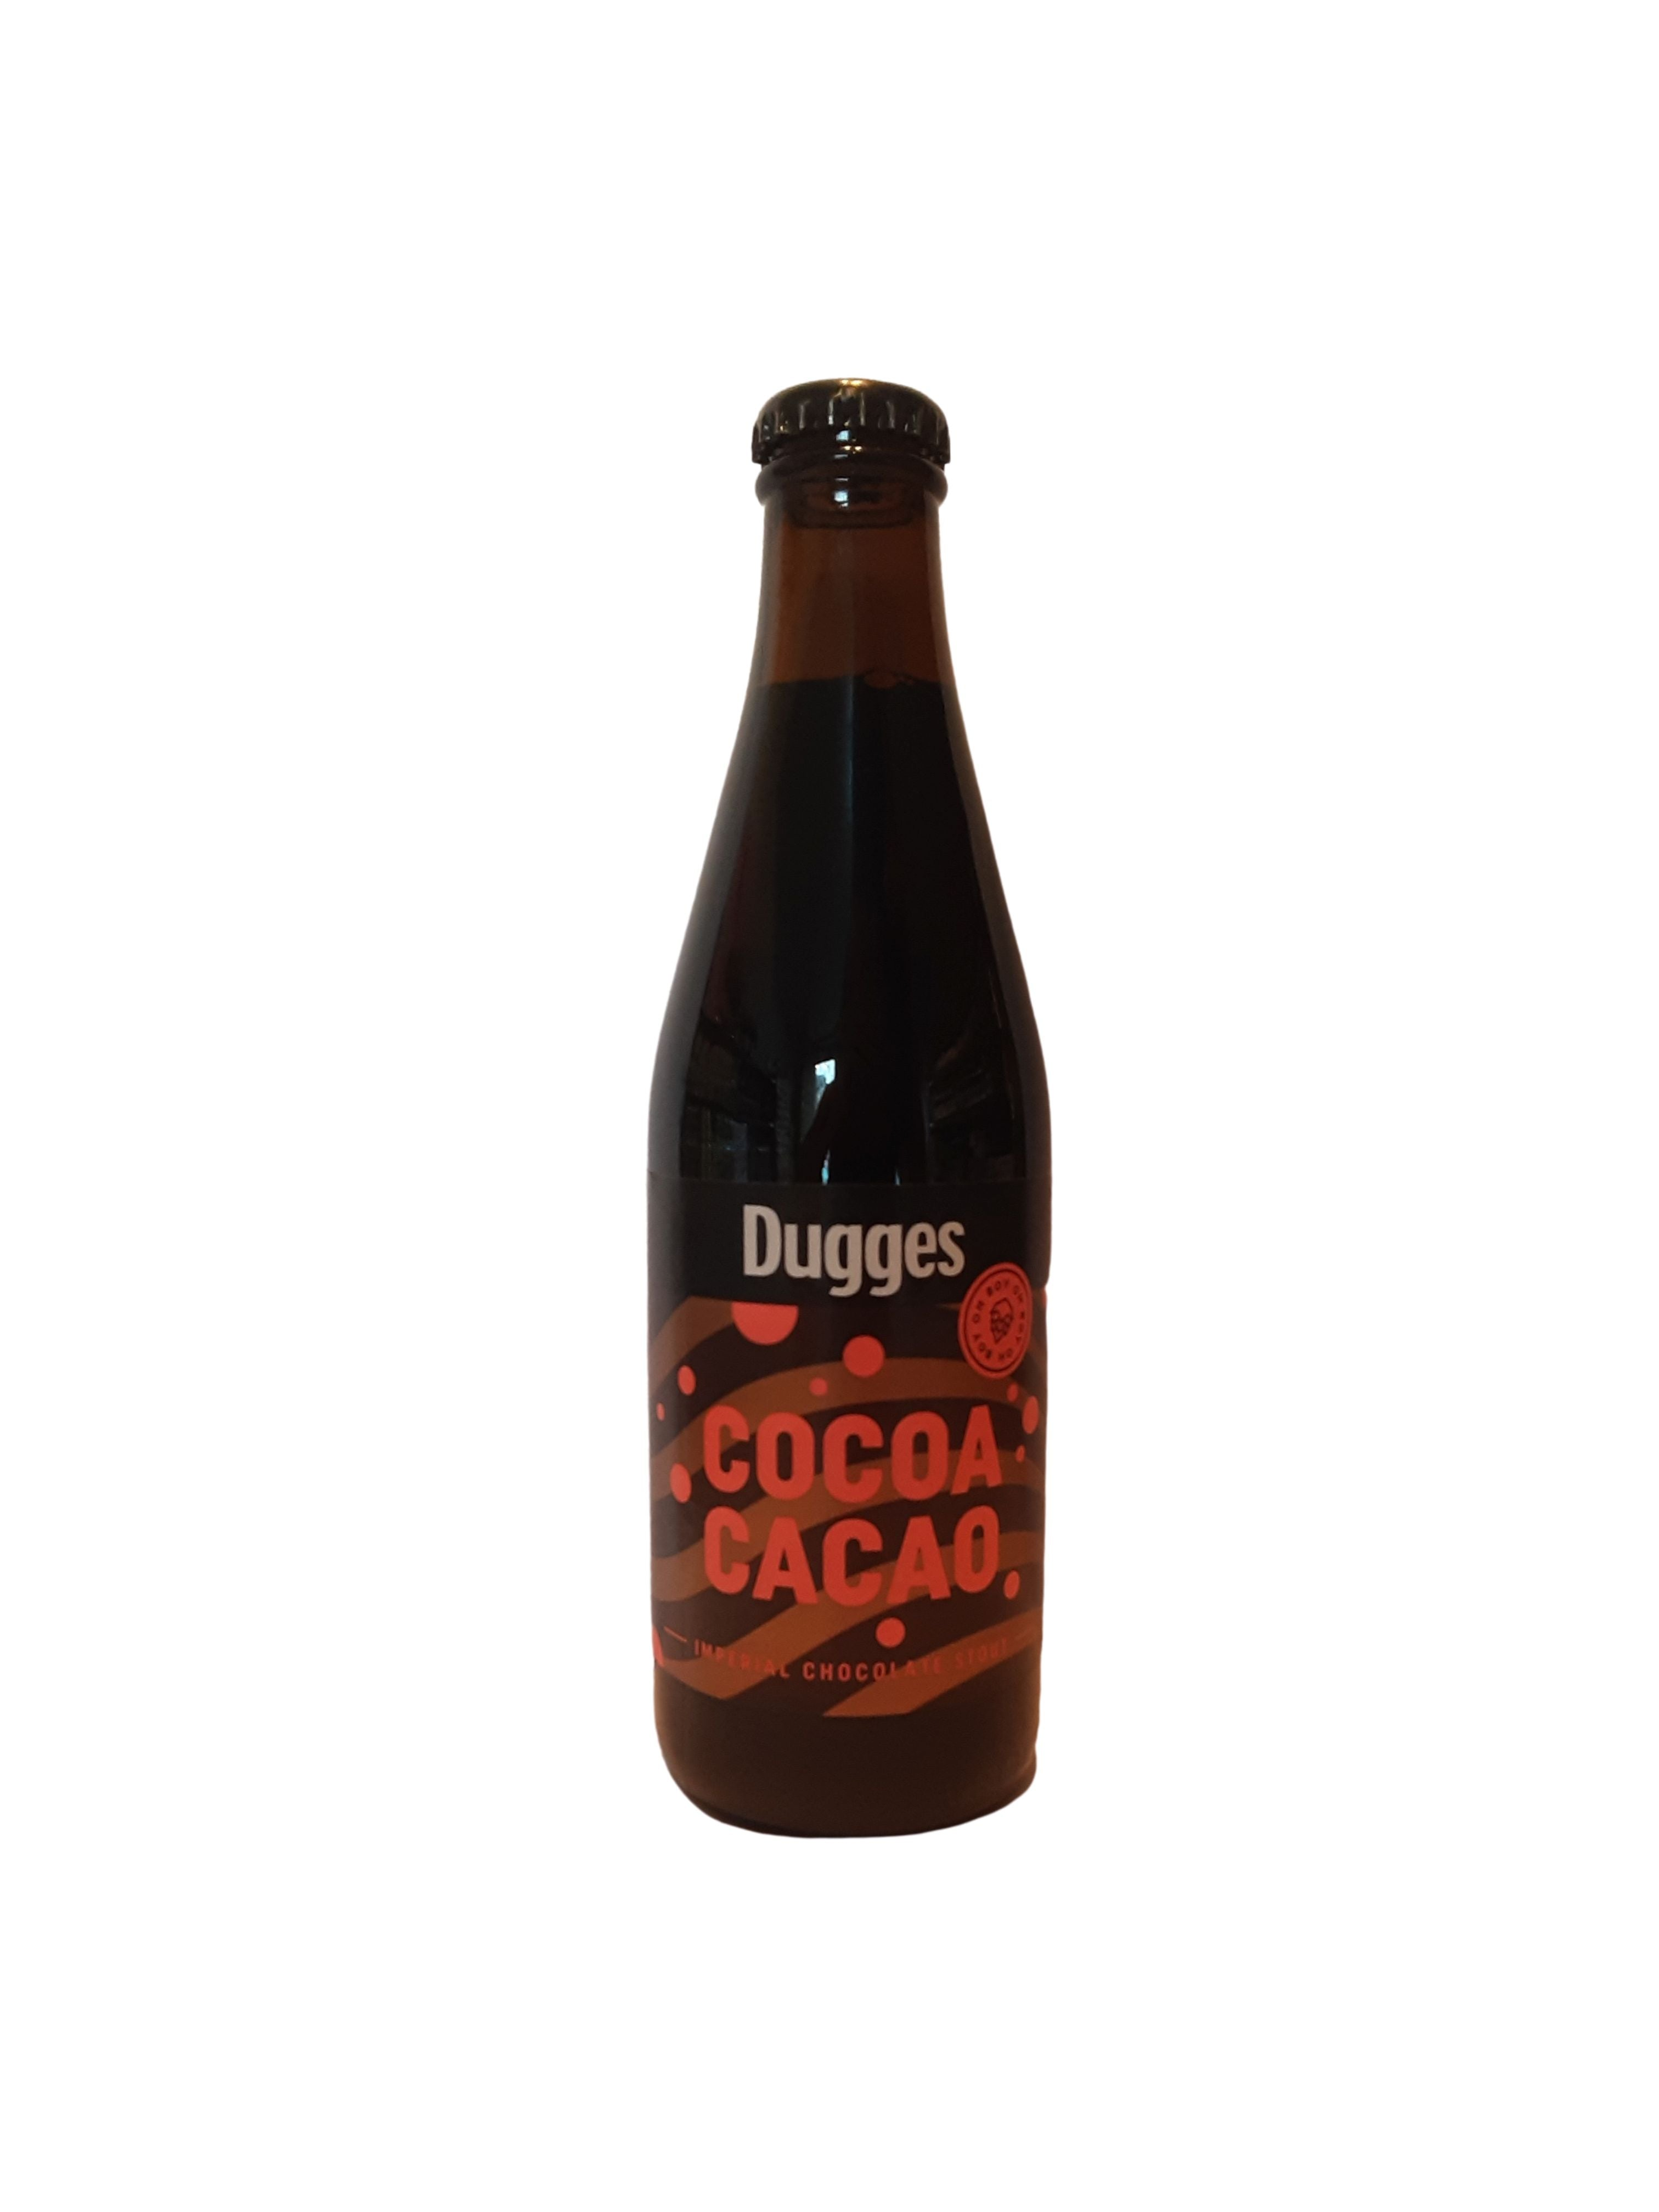 Dugges - Cocoa Cacao - Imperial Stout - 11.5% (4.12 UT)